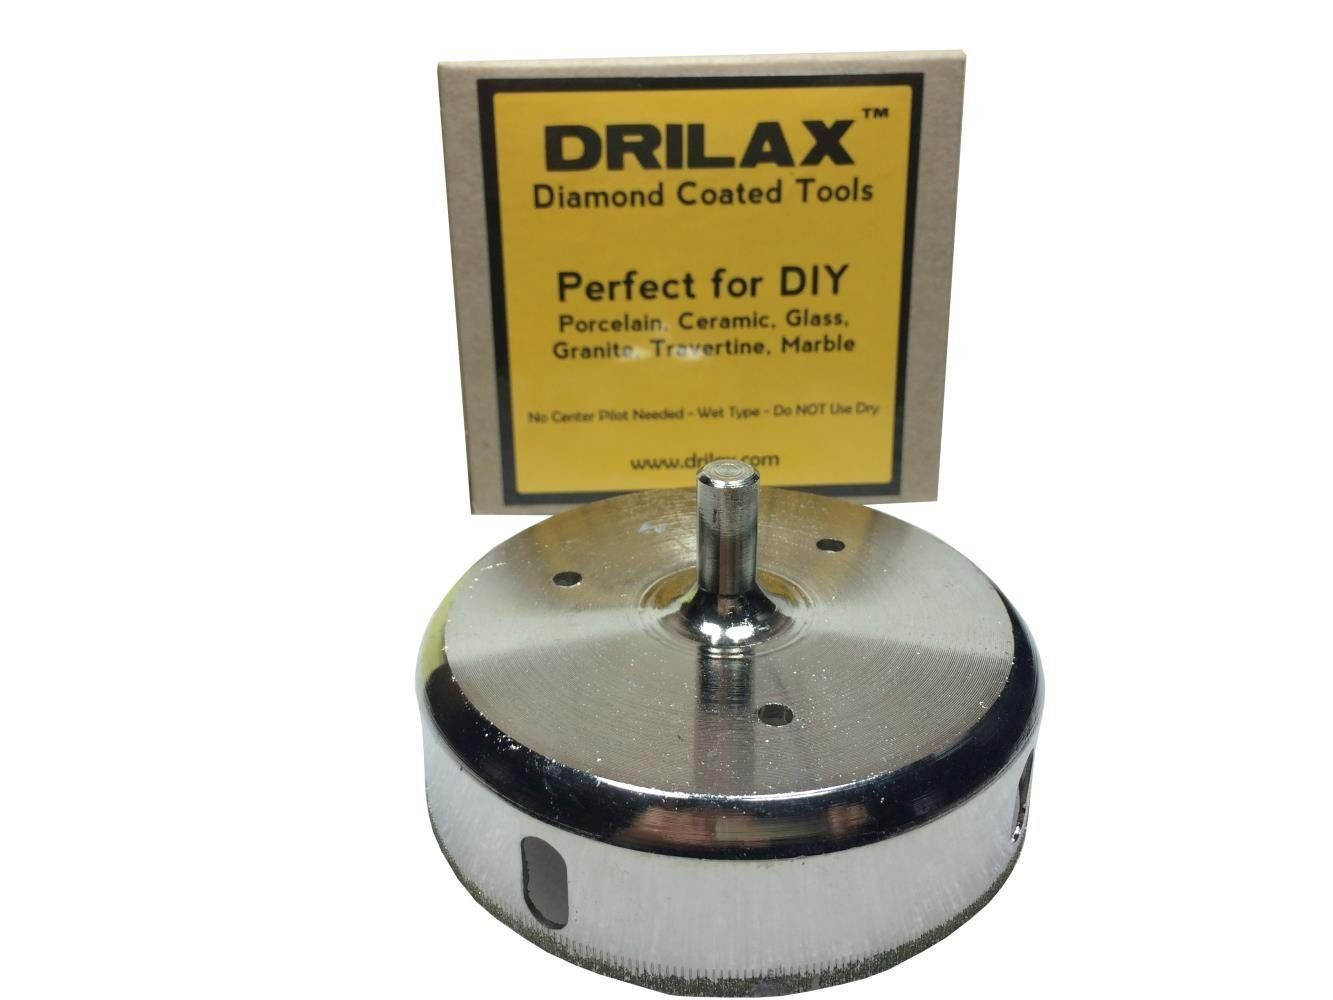 Drilax 3 1 2 Inch Diamond Hole Saw Glass Drill Bit Awesome Product Click The Image Diy Do It Yourself Today Drill Bits Glass Marbles Glass Tile